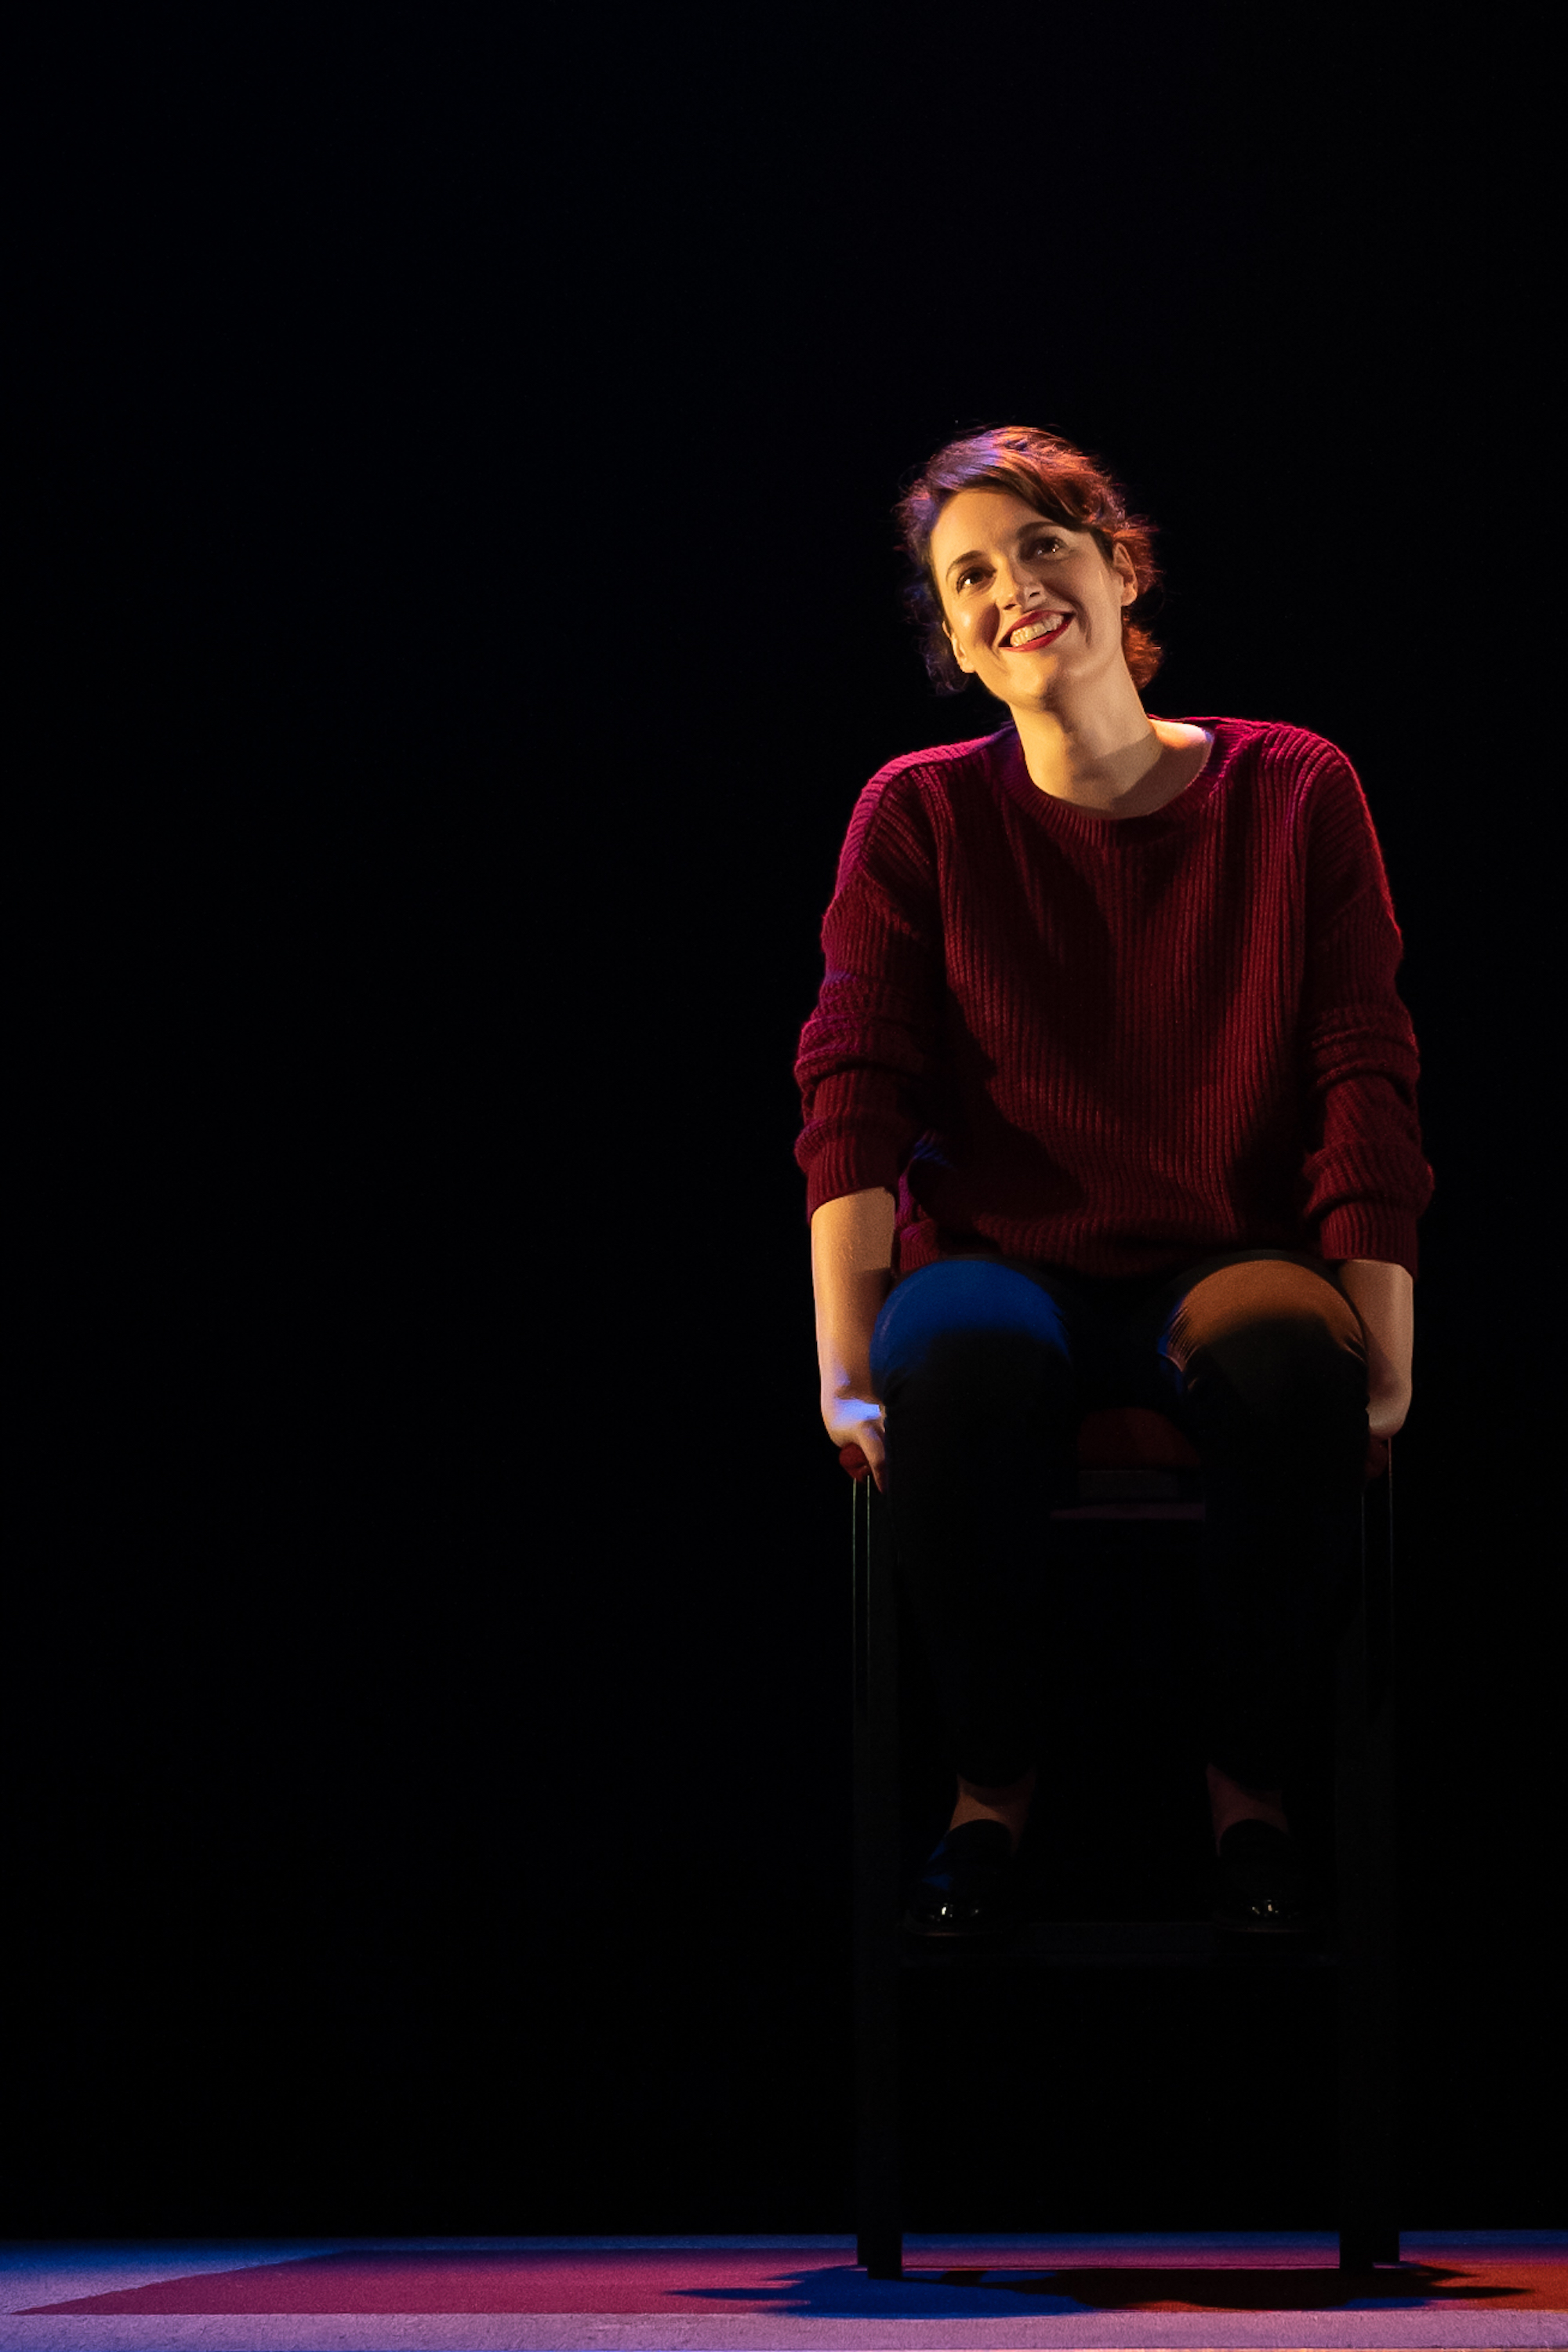 Phoebe Waller-Bridge in London theatre play of Fleabag looking up